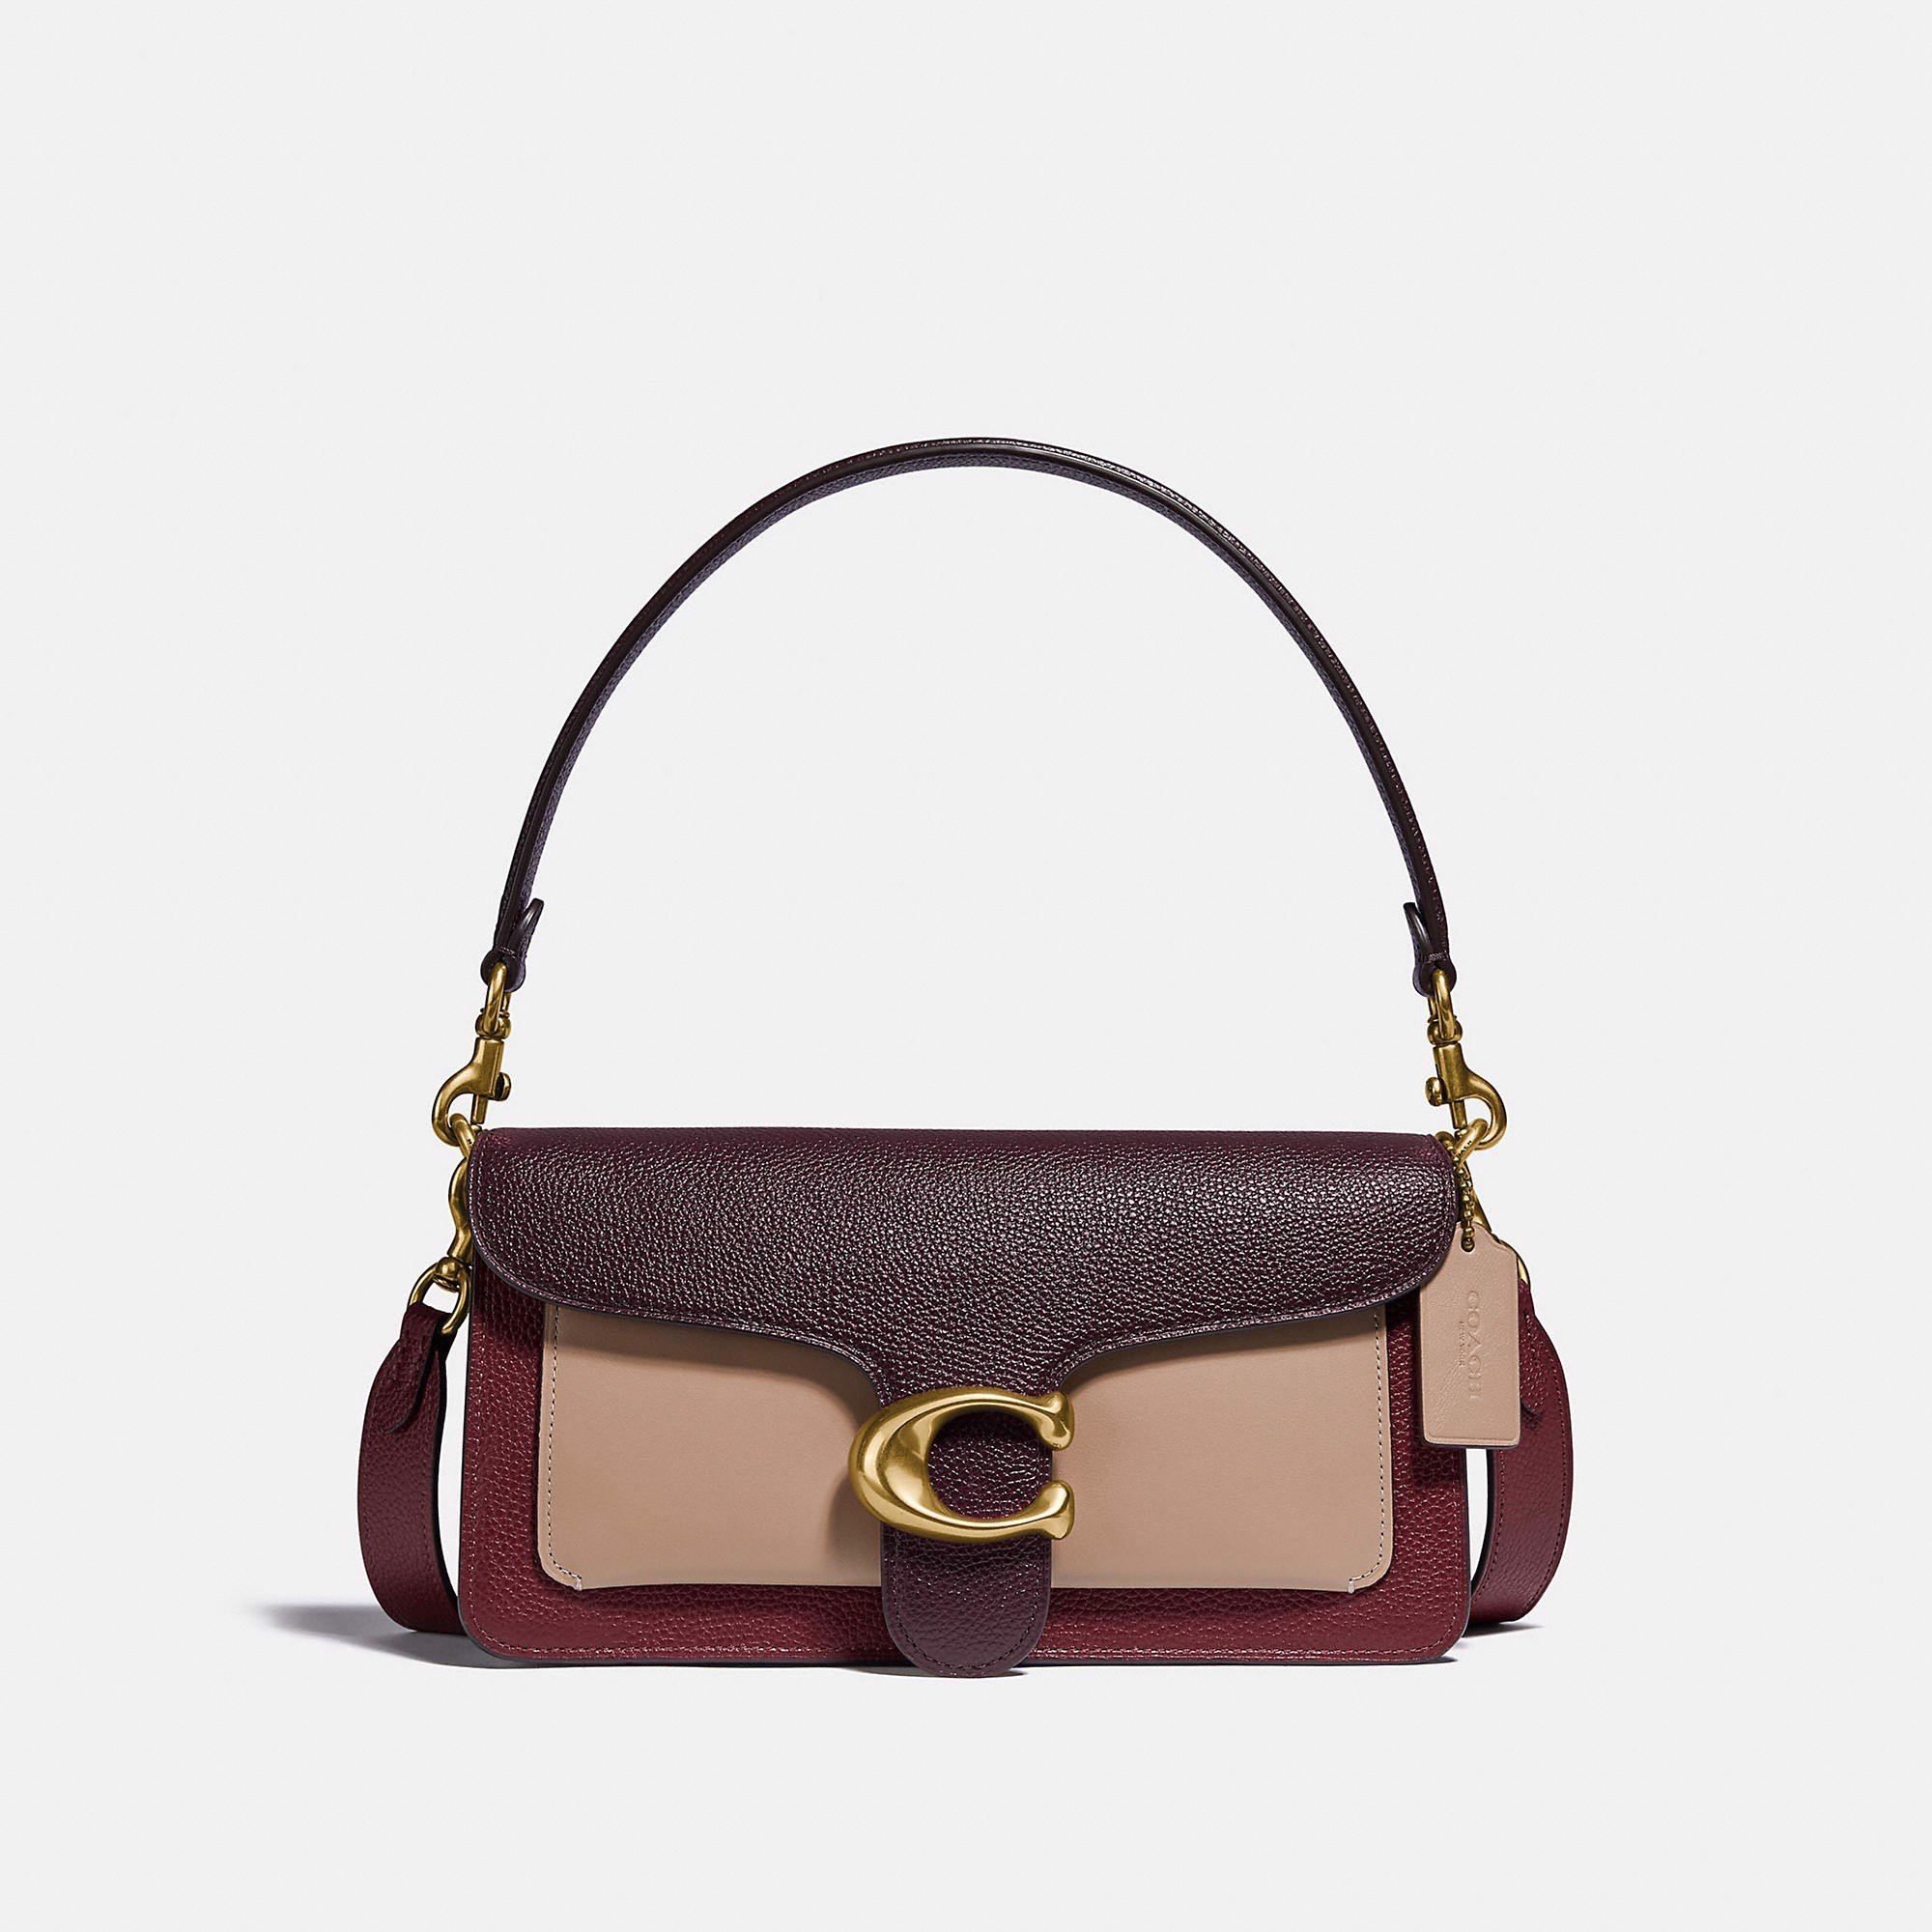 Coach Tabby Shoulder Bag 26 In Colorblock - Confetti Multi